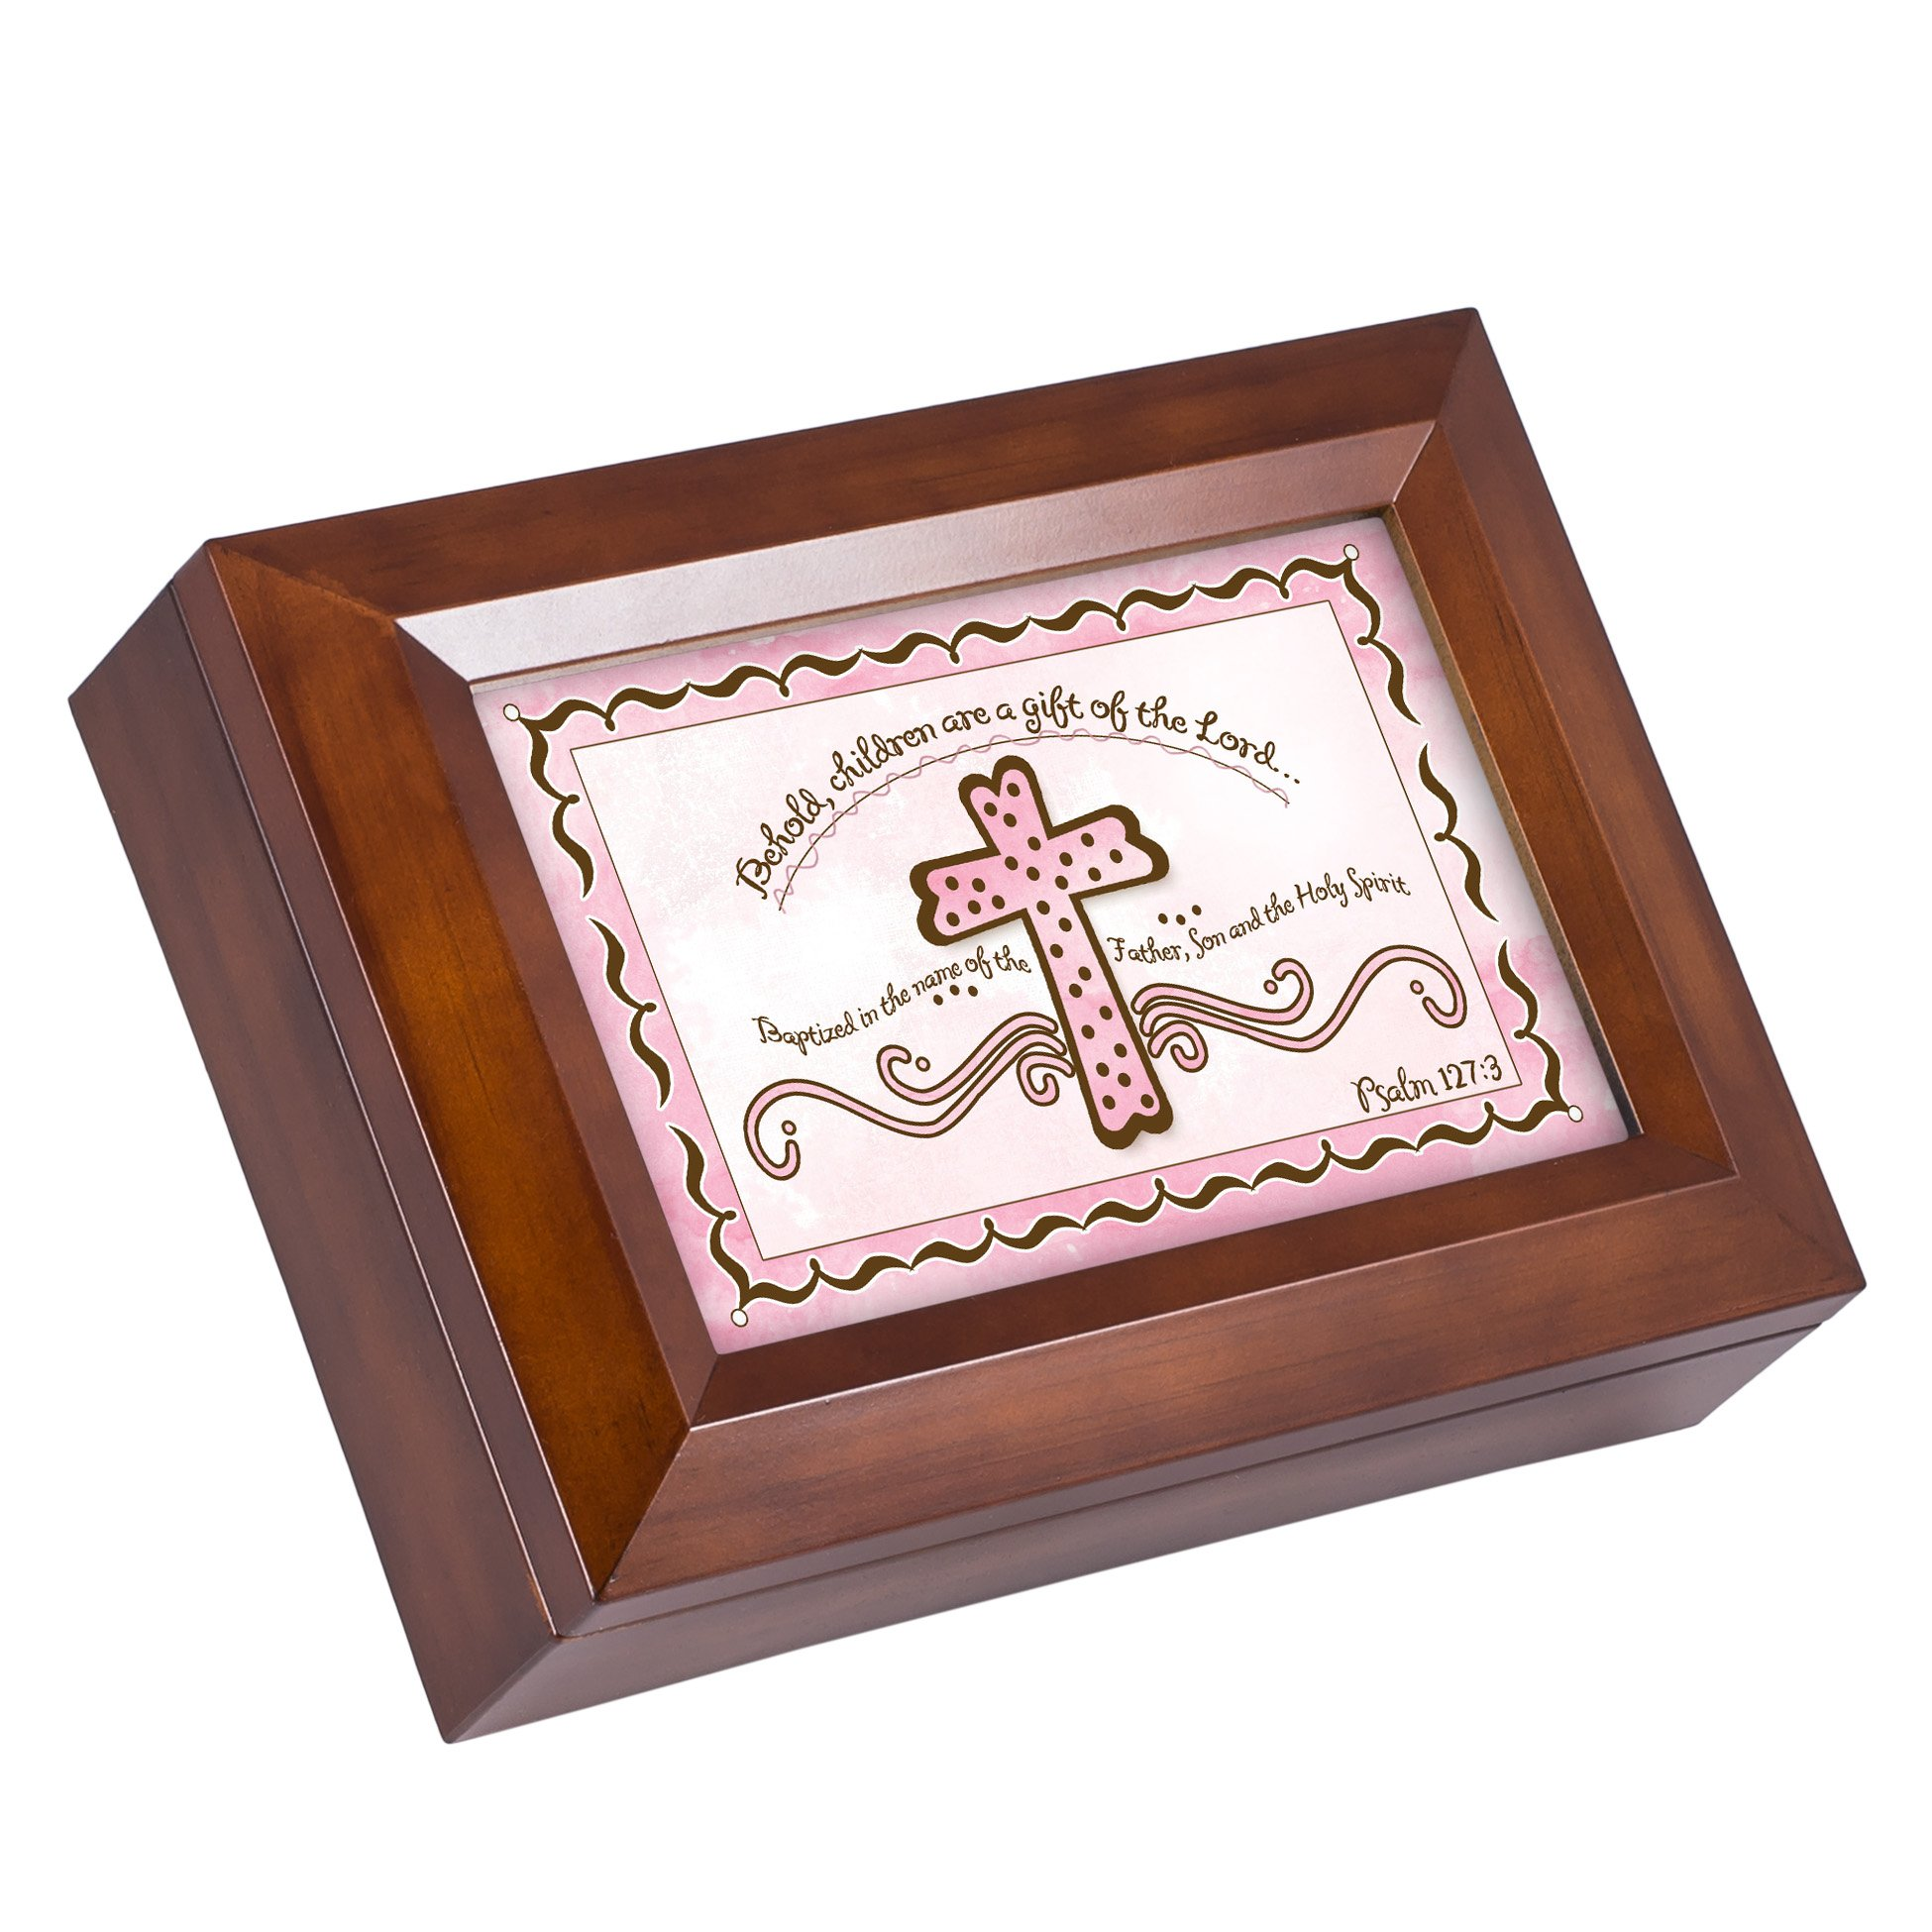 Cottage Garden Baby Girl Baptism Cross Psalm 127:3 Wood Finish Jewelry Music Box - Plays Tune You Are My Sunshine by Cottage Garden (Image #2)